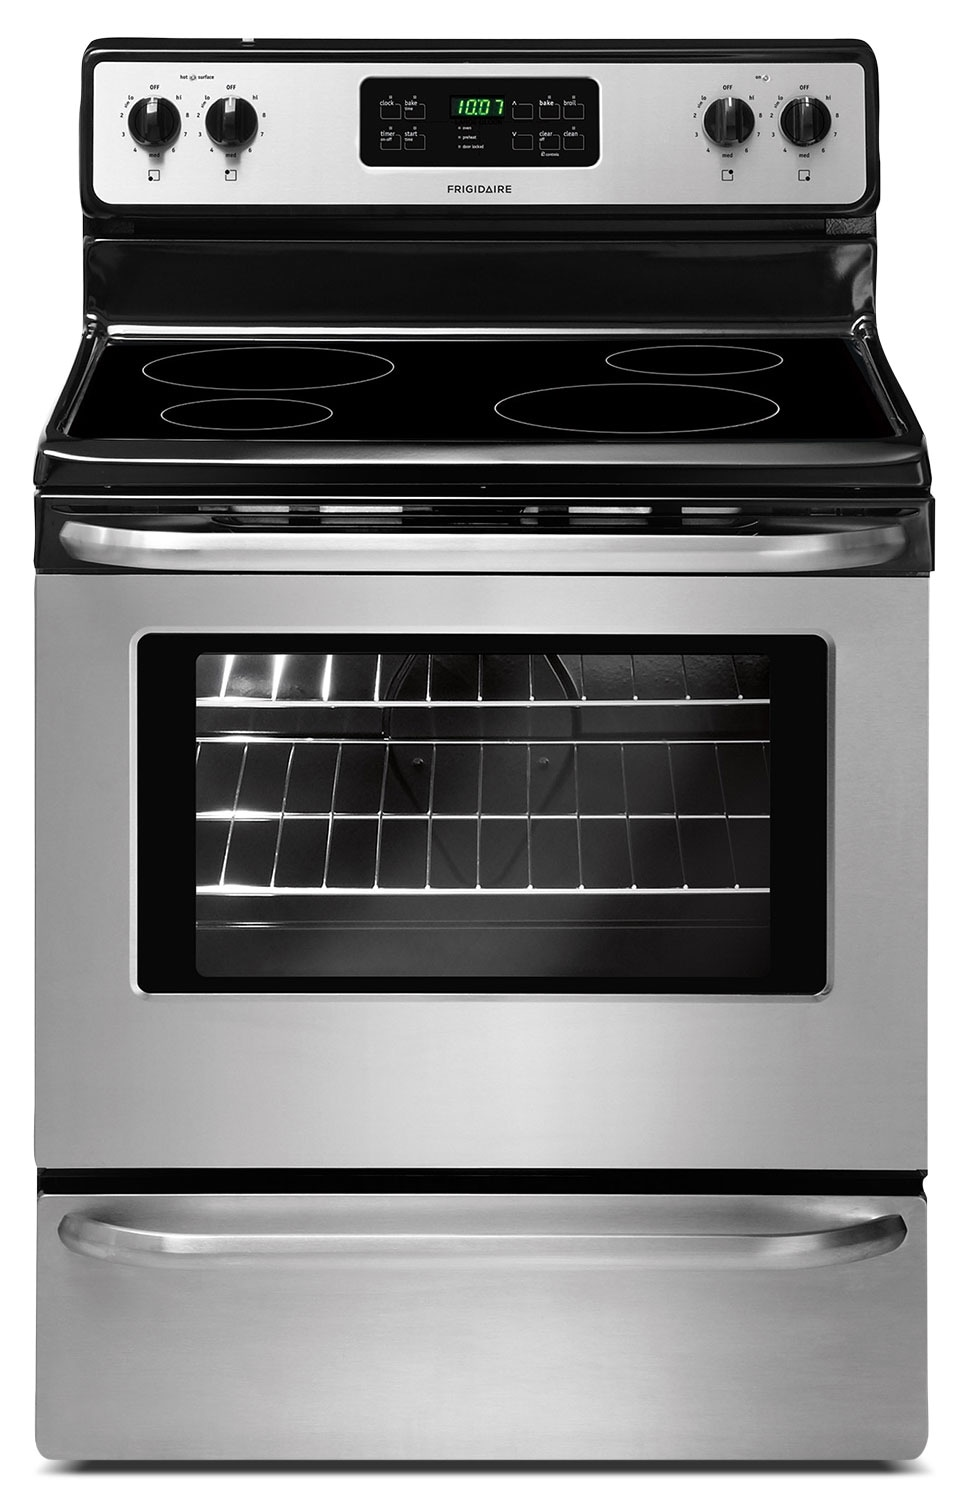 Frigidaire 5.3 Cu. Ft. Self-Clean Freestanding Electric Range - Stainless Steel